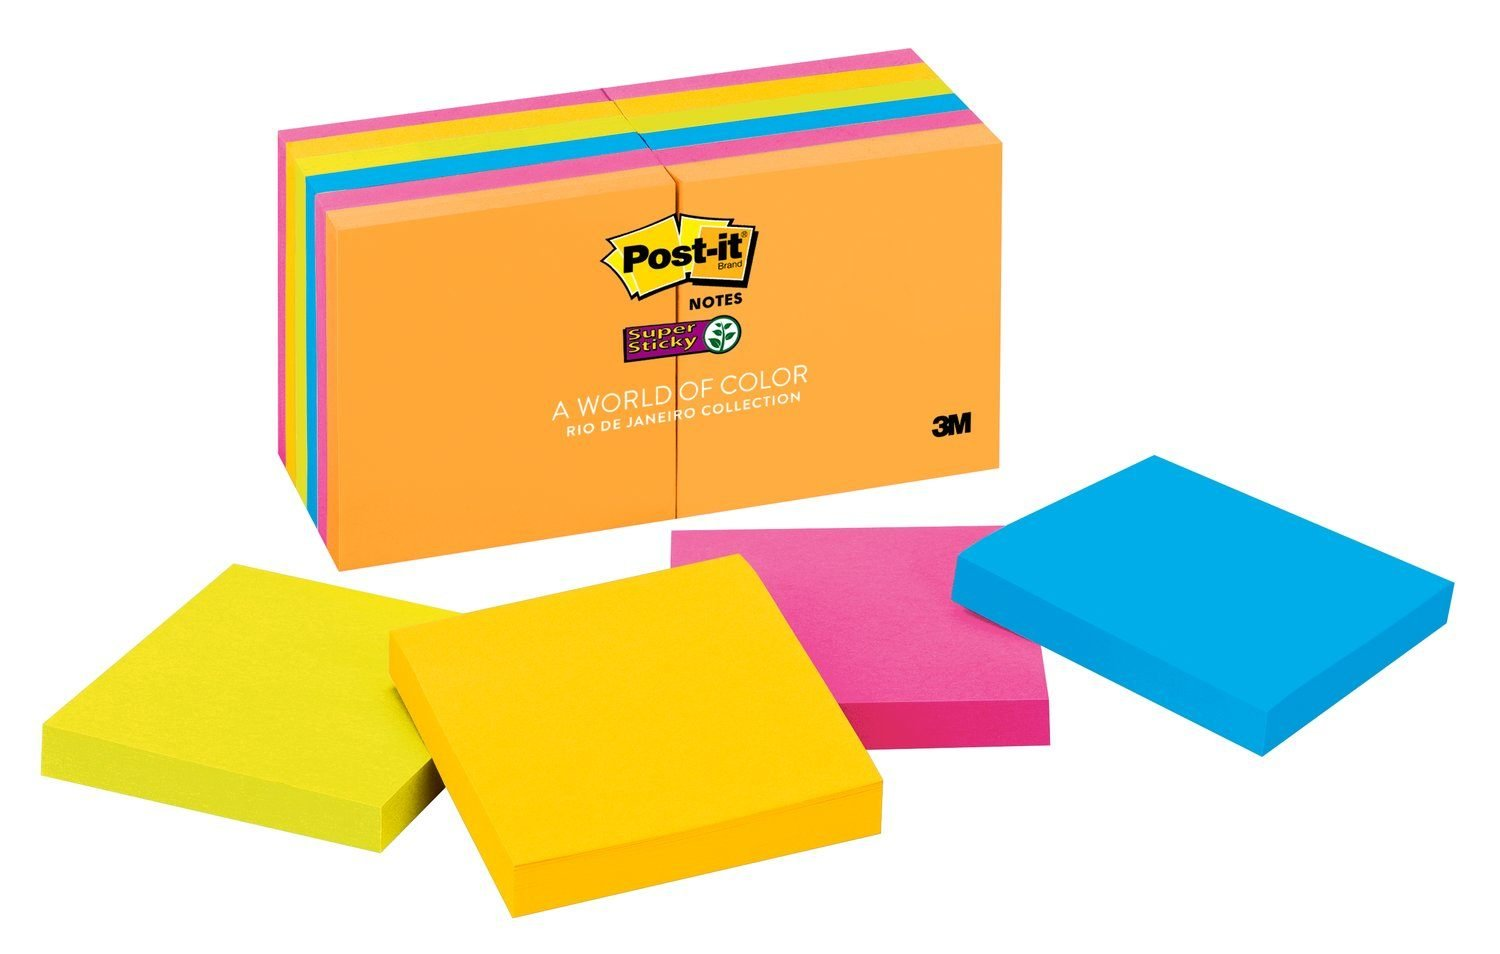 Post-it Super Sticky Notes, 2x Sticking Power, 3 in x 3 in, Rio de Janeiro Collection, 12 Pads/Pack, 90 Sheets/Pad (654-12SSUC)